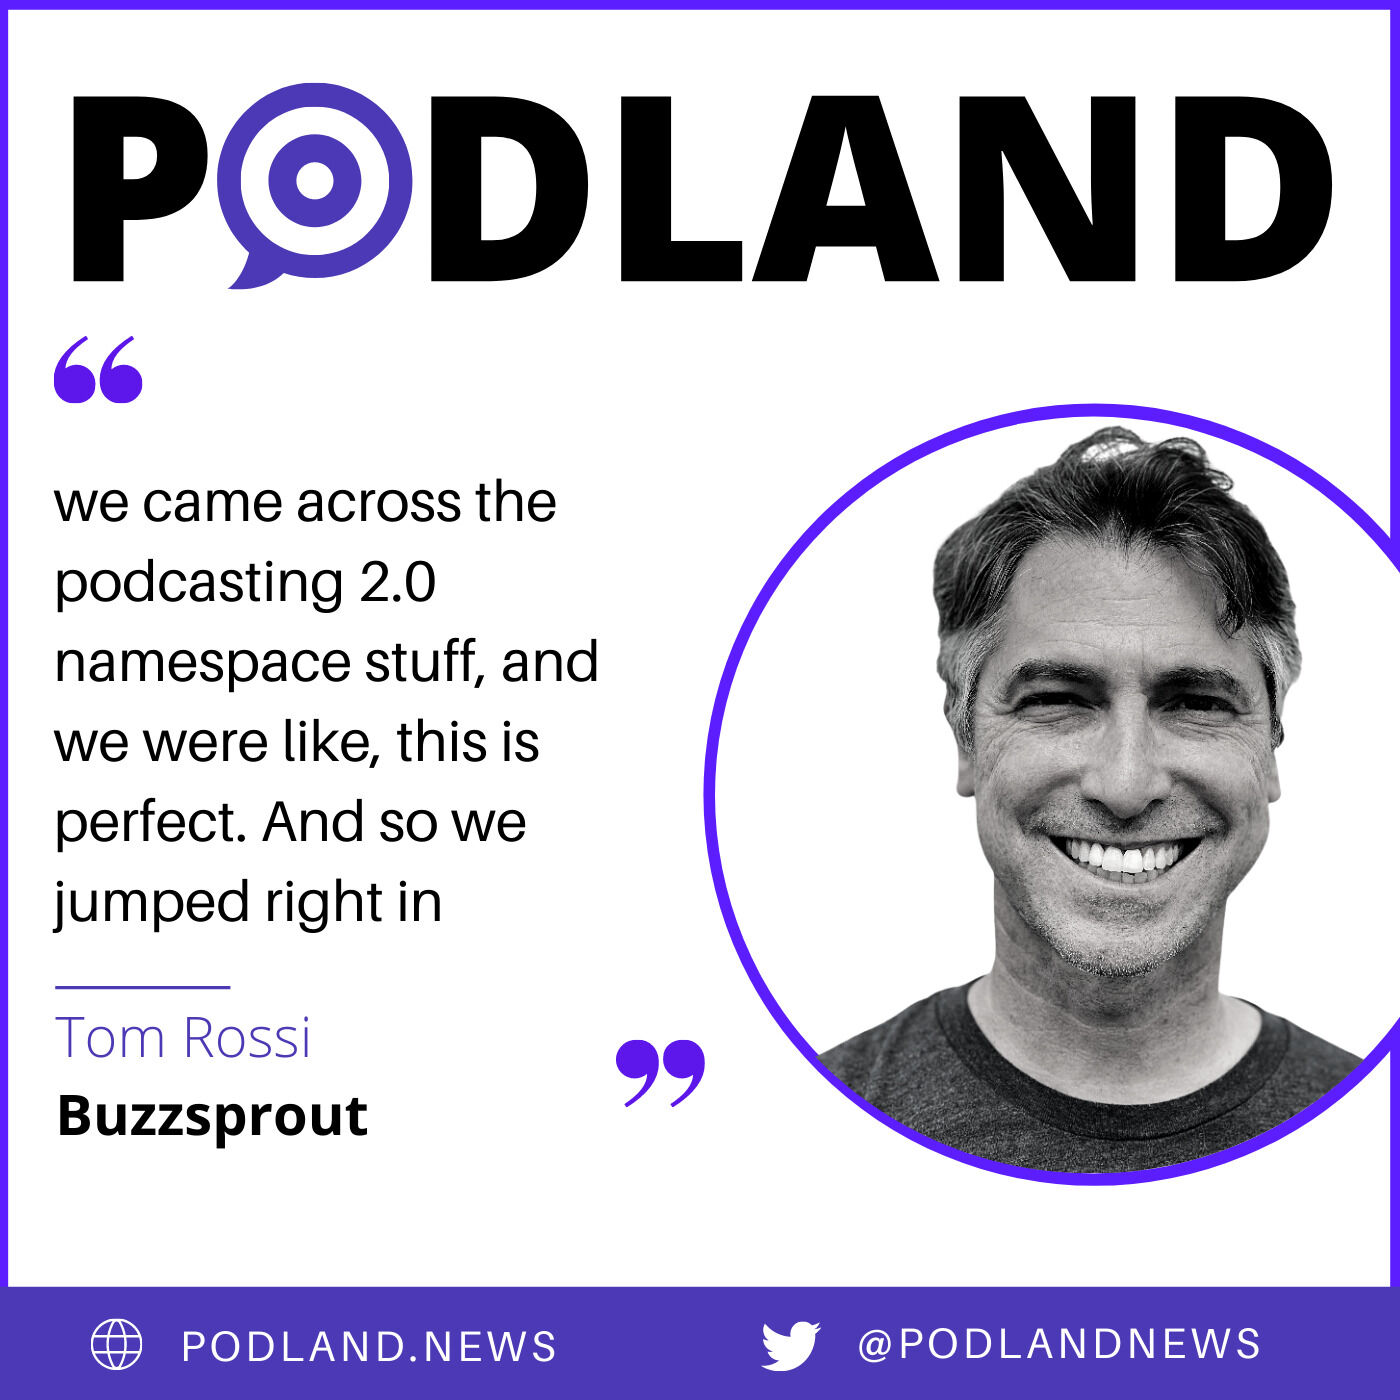 iHeartMedia buy Triton Digital, Songs For Podcasters, Interview with Tom Rossi from Buzzsprout